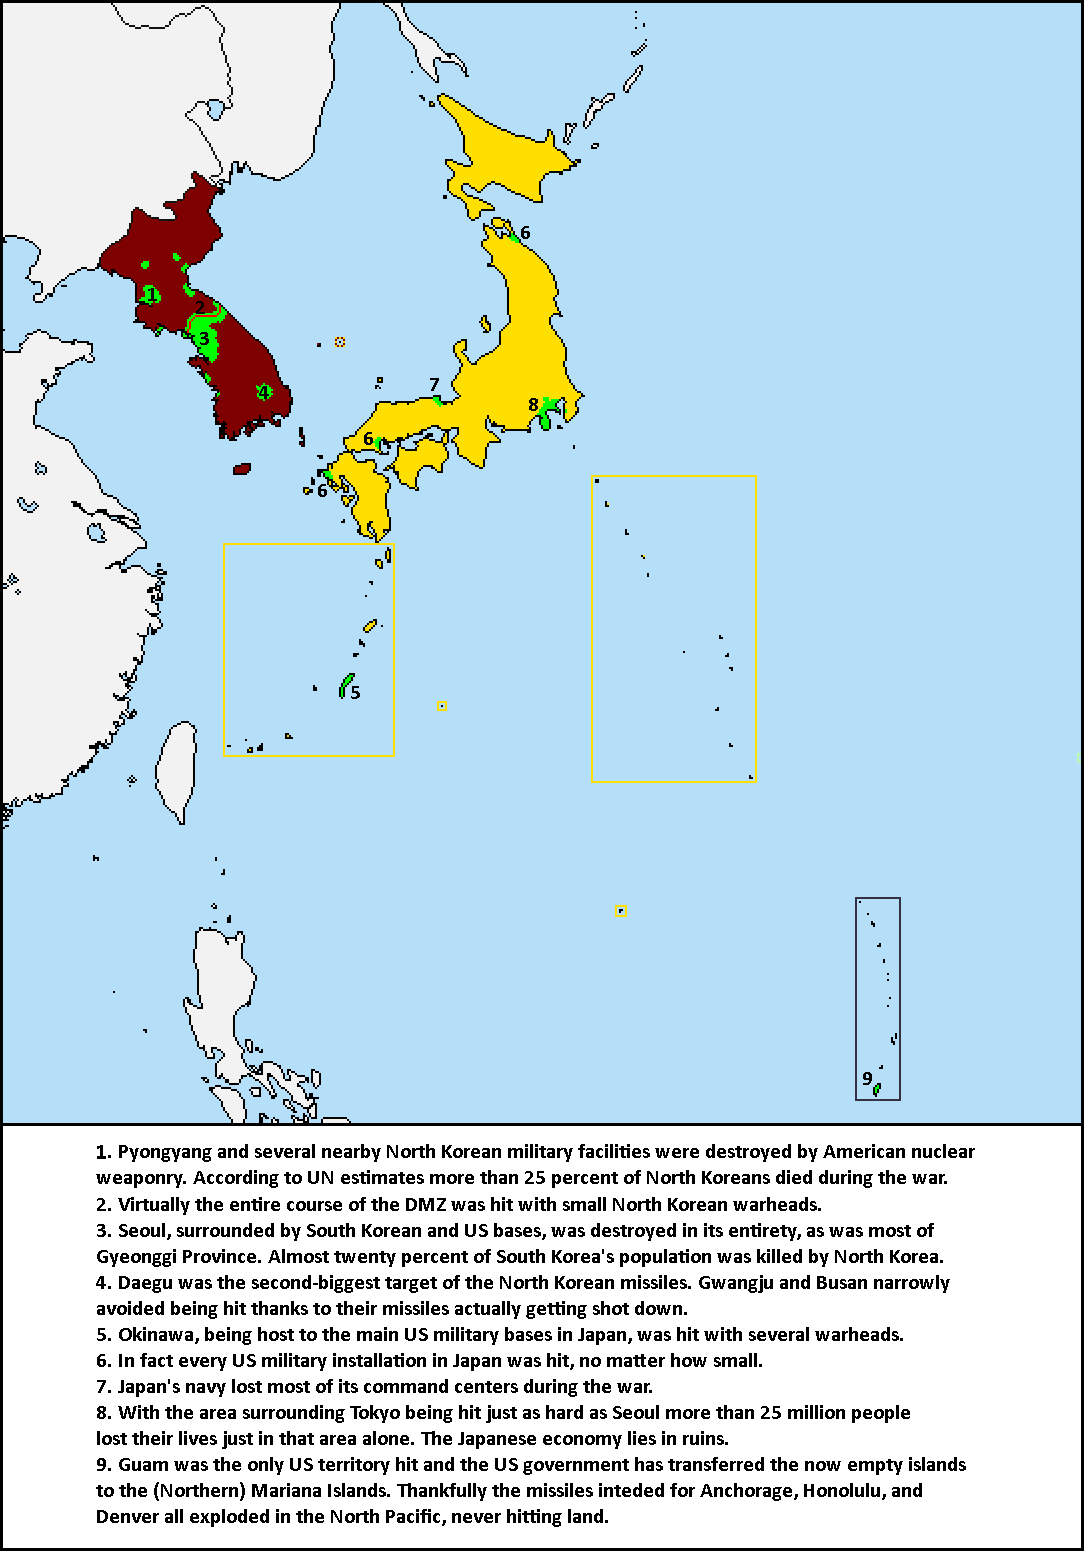 Worksheet. Aftermath Second Korean War by FederalRepublic on DeviantArt